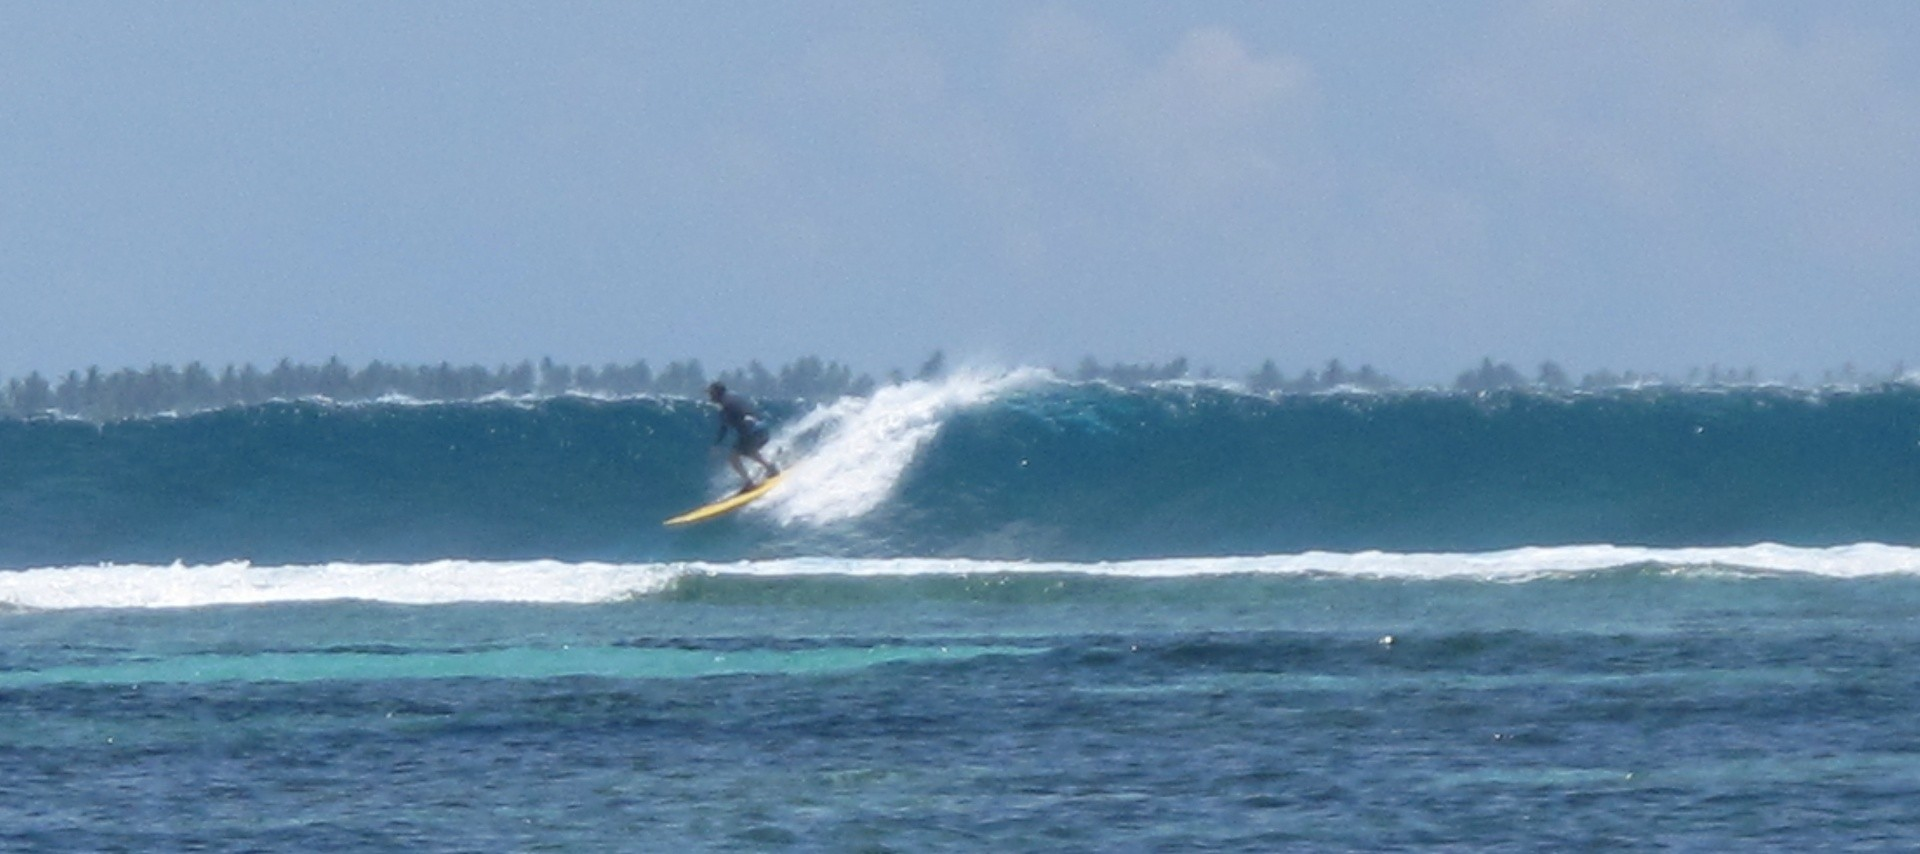 Maathey Slater's photo of Blue Bowls